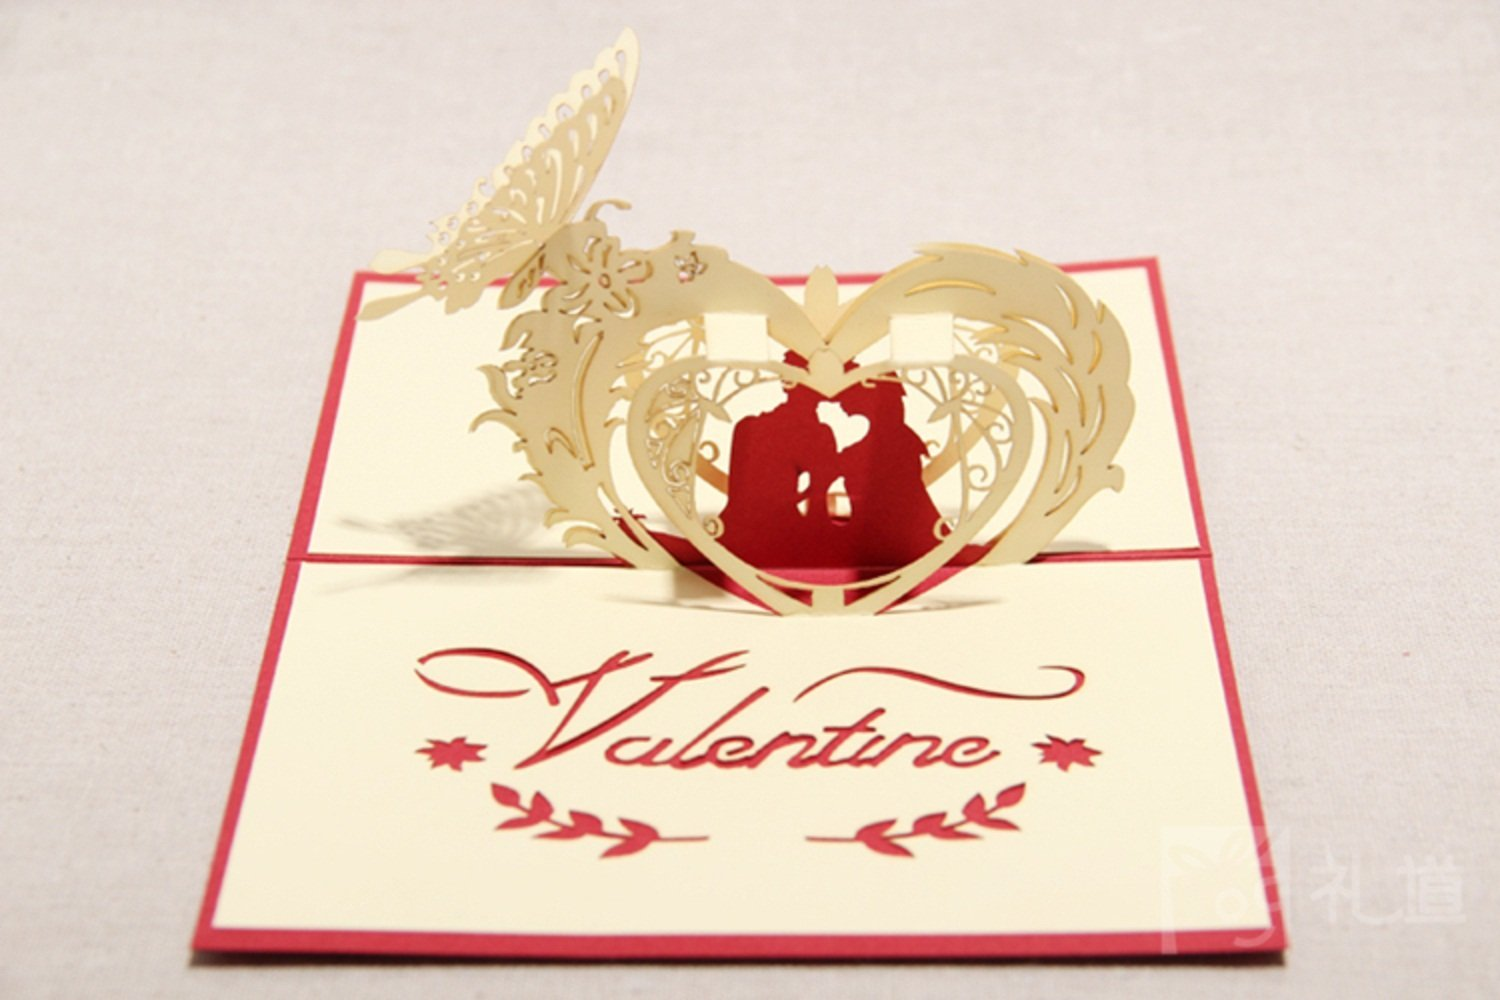 Cheap greeting card craft ideas find greeting card craft ideas get quotations 3d pop up handmade cards creative greeting cards paper craft valentine card red m4hsunfo